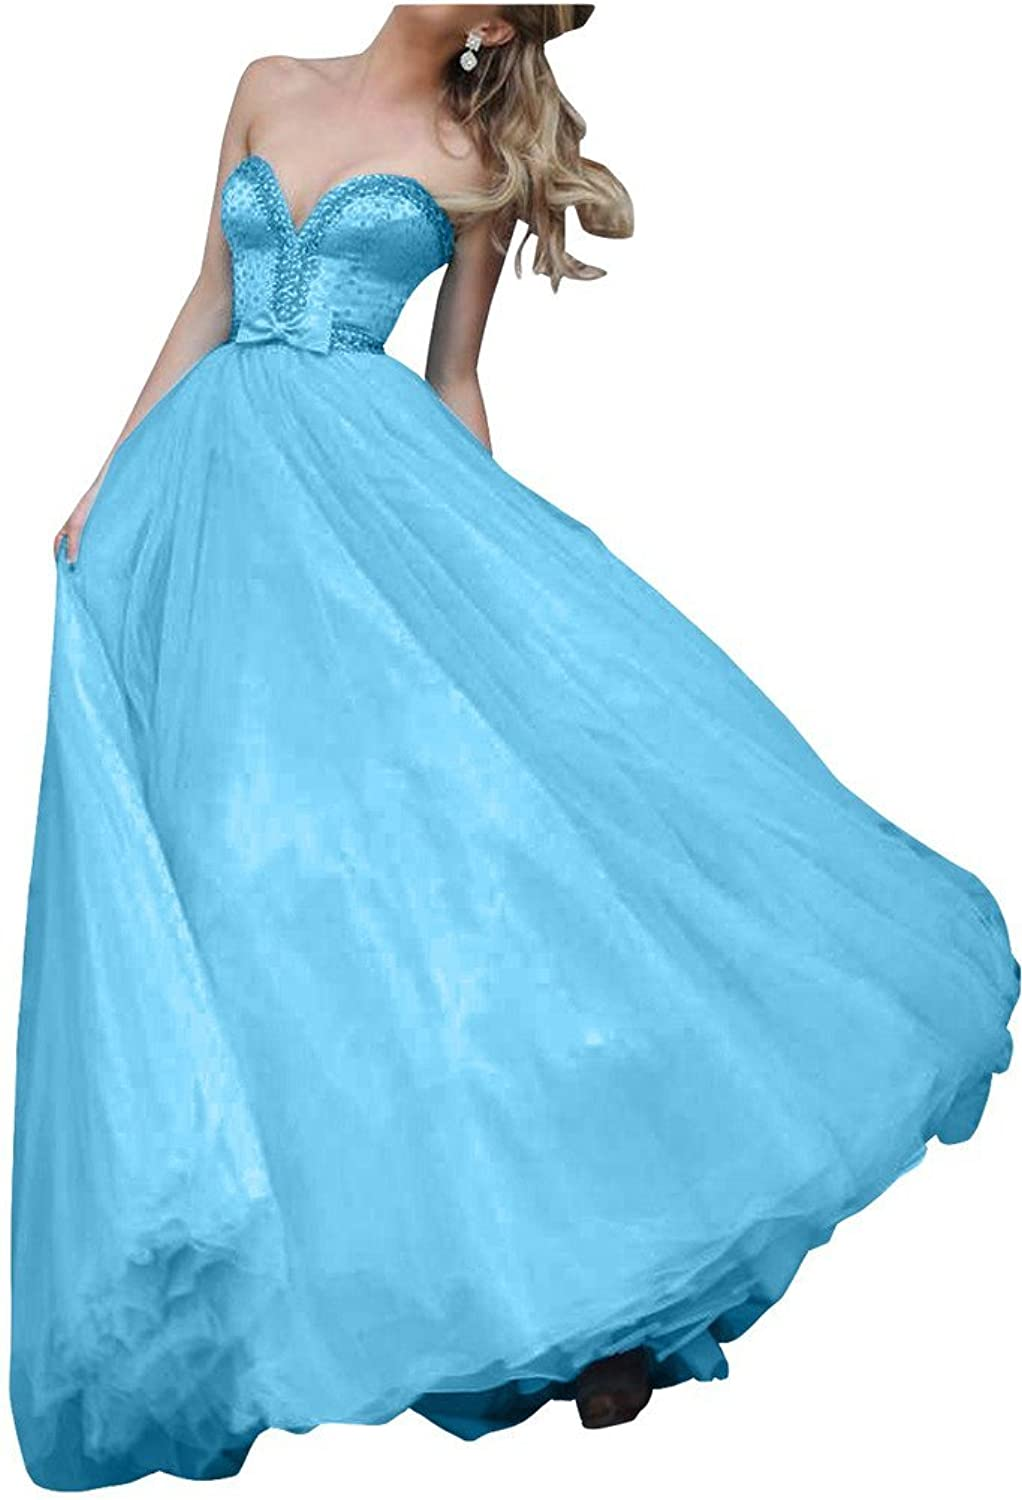 Avril Dress Sweetheart Ball Gown Beading Bowknot Quinceanera Prom Dress